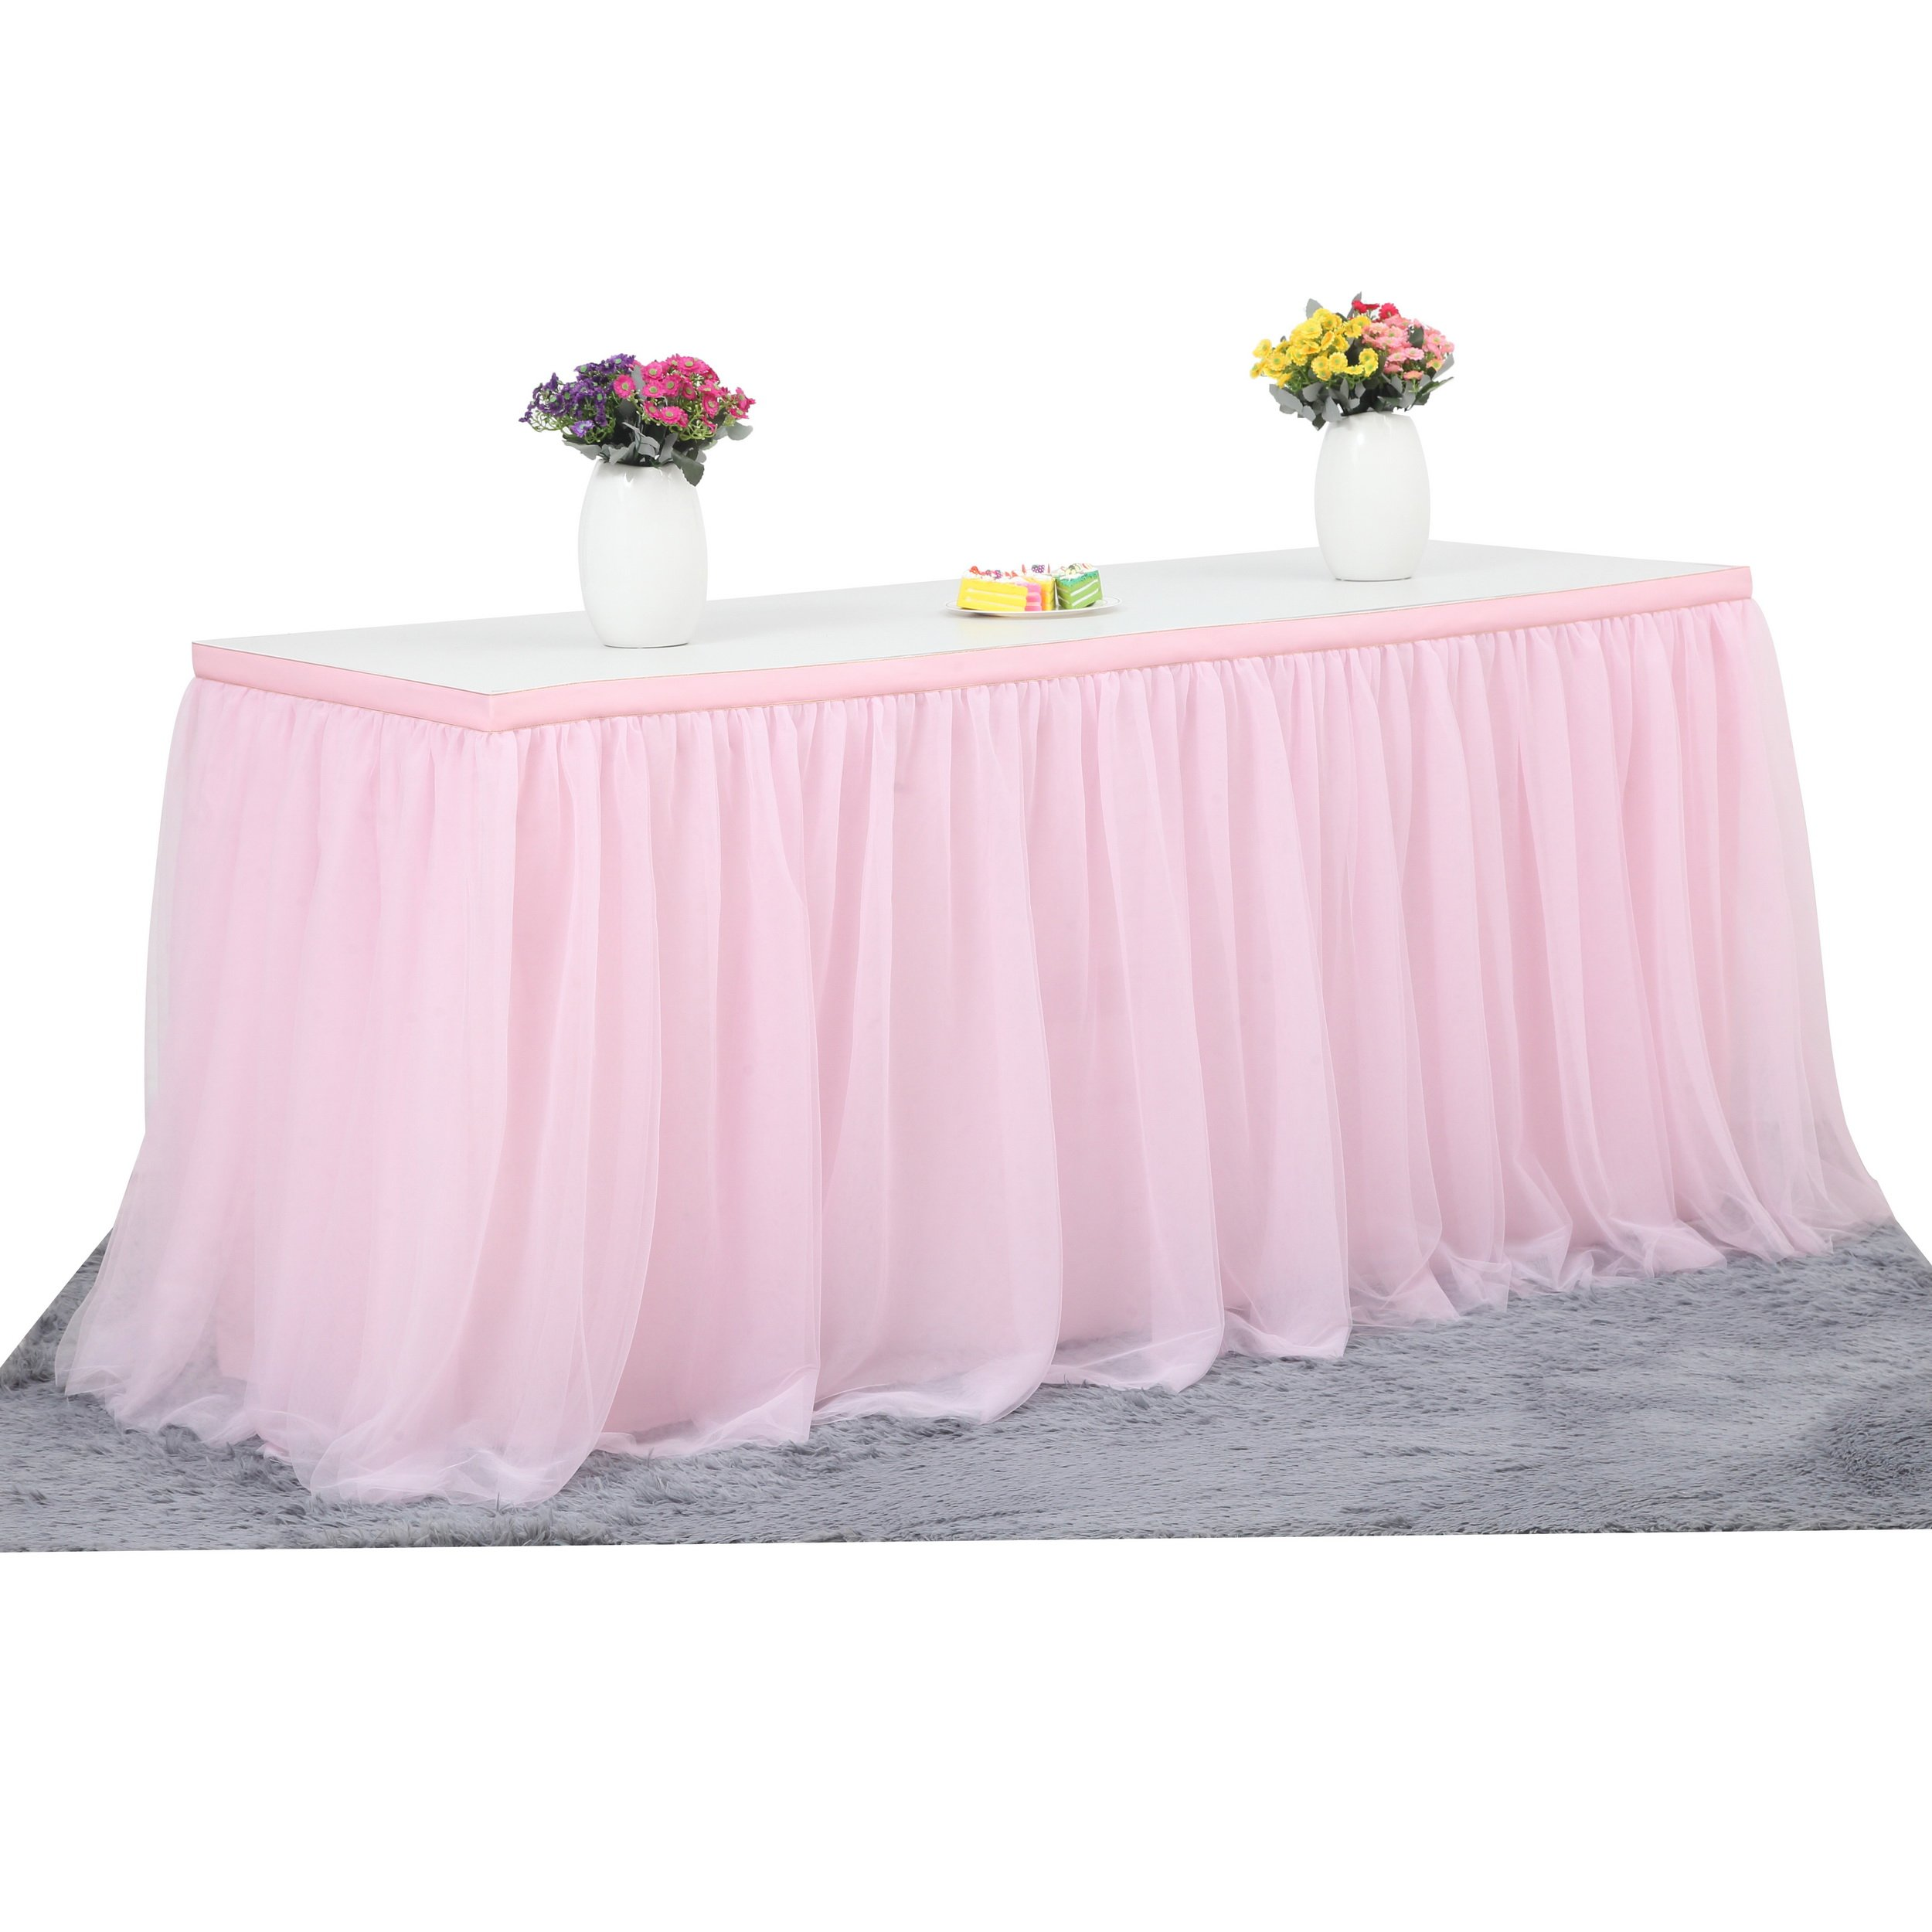 Suppromo 3 Yards High-end Gold Brim 3 Layer Mesh Fluffy Tutu Table Skirt Tulle Tableware Table Cloth For Party,Wedding,Birthday Party&Home Decoration,Table Skirting (L9(ft) H 30in, Pink) by Suppromo